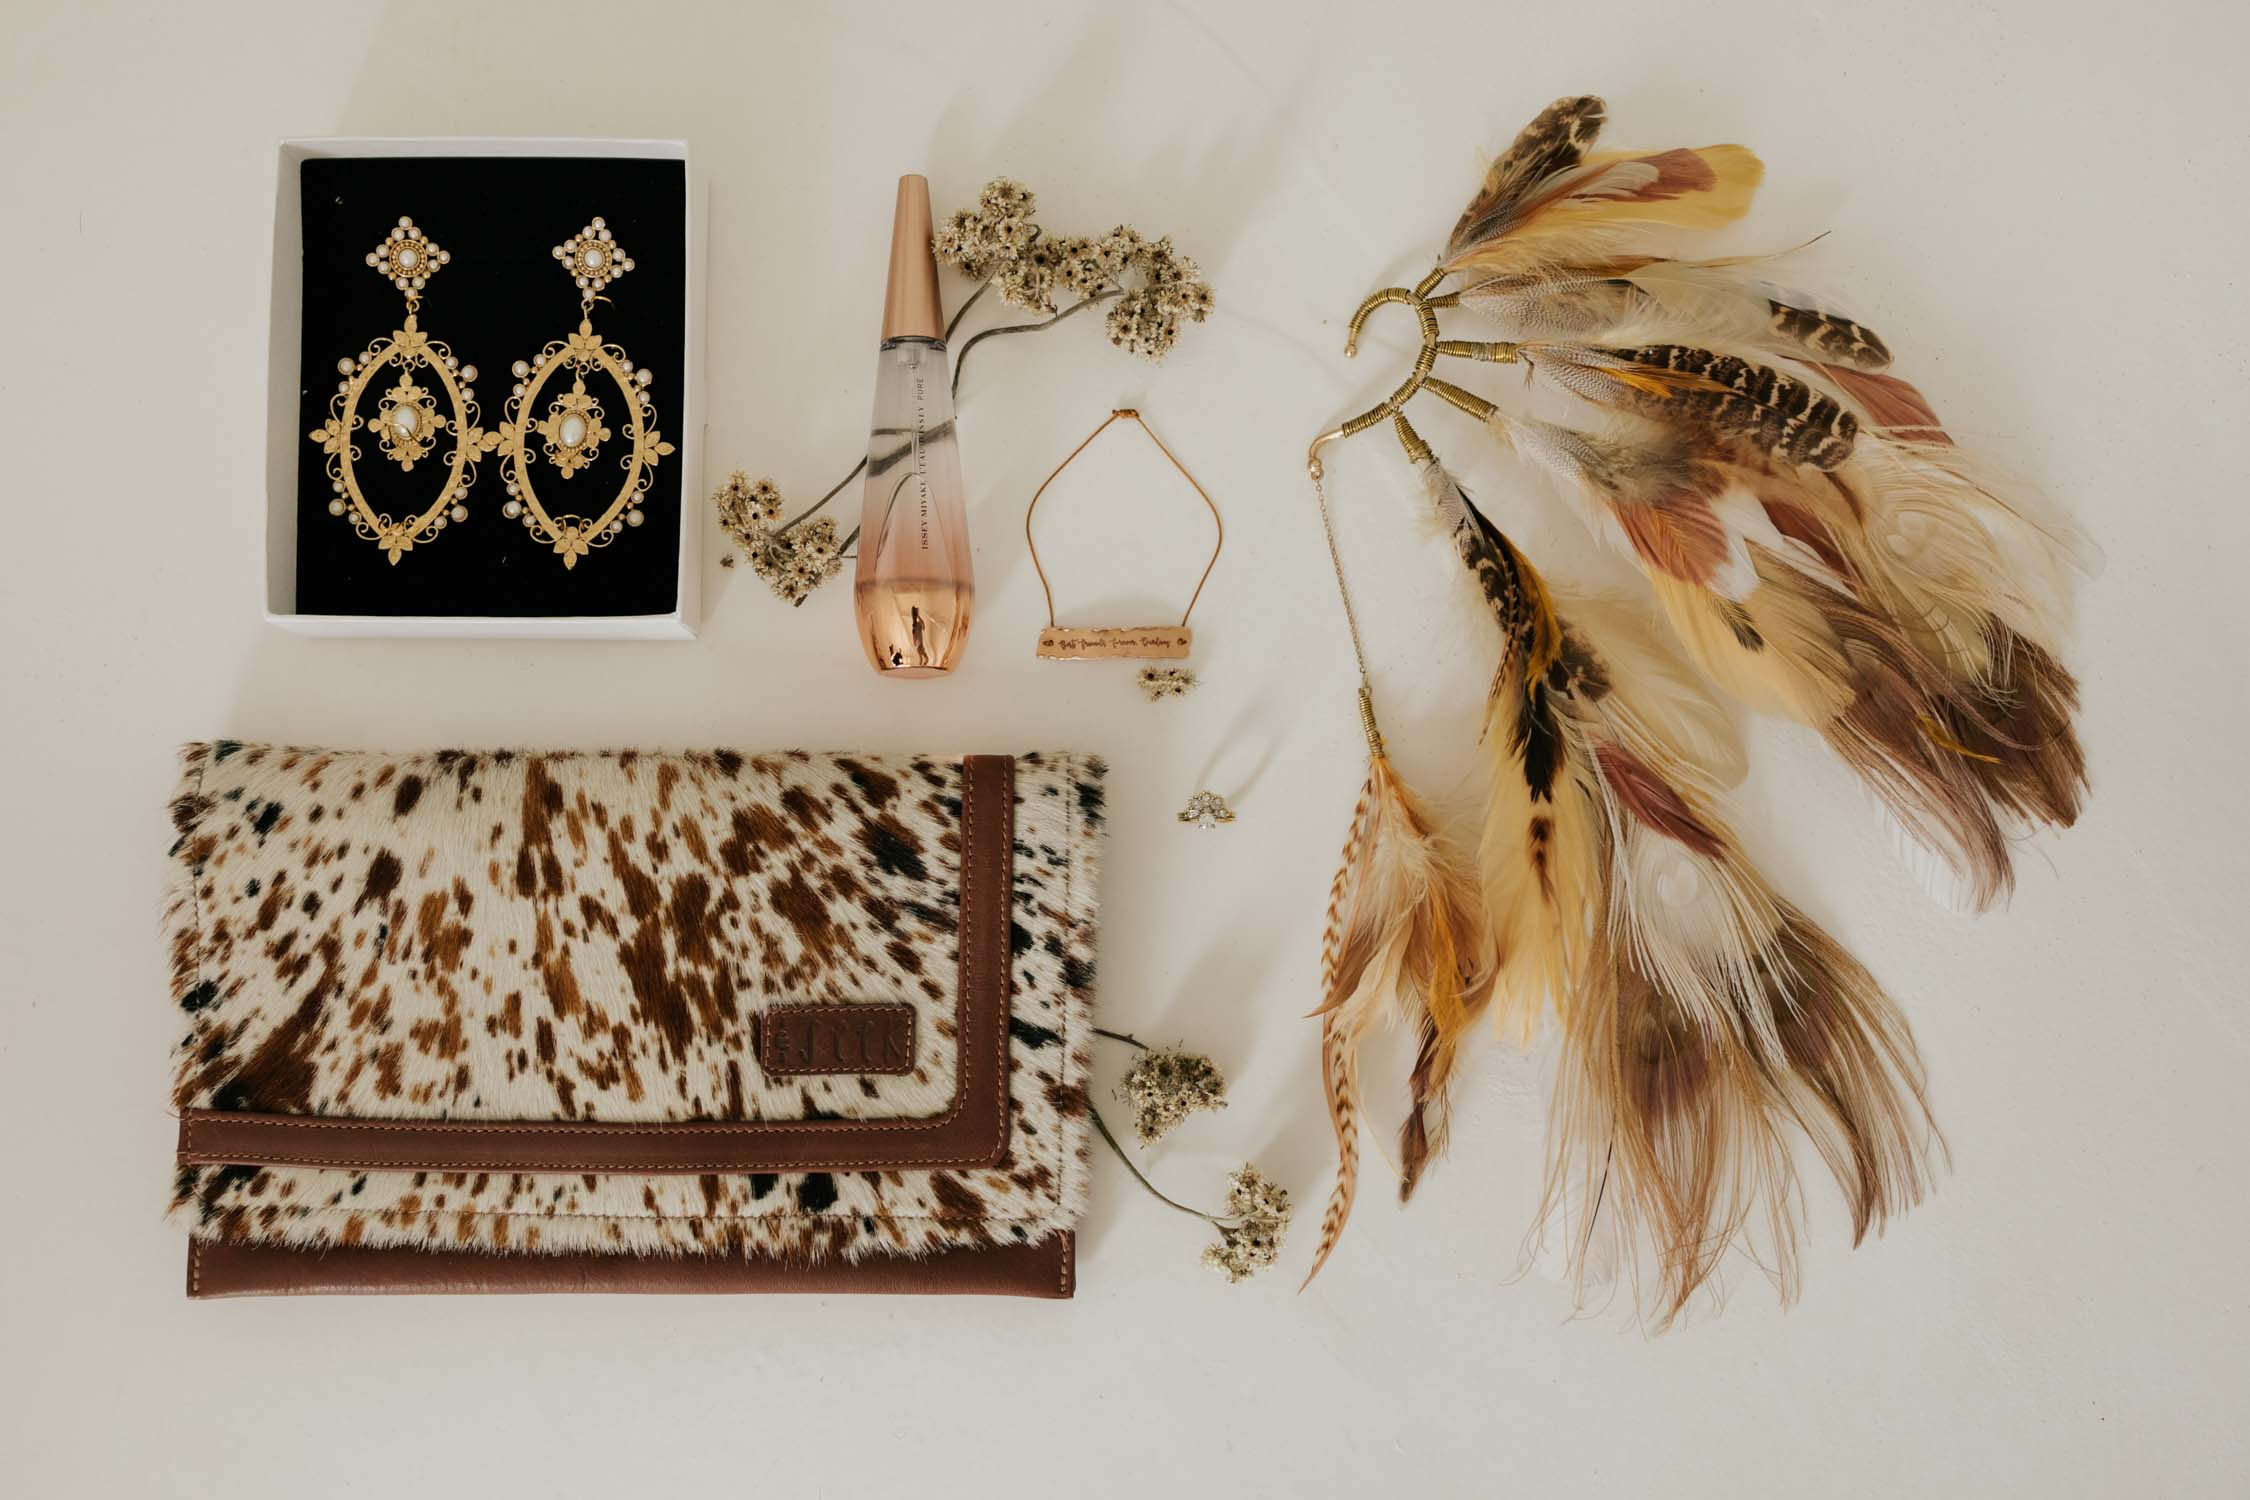 Boho bride flatlay with cowhide clutch bag, feather ear cuff and Bo and Luca earrings